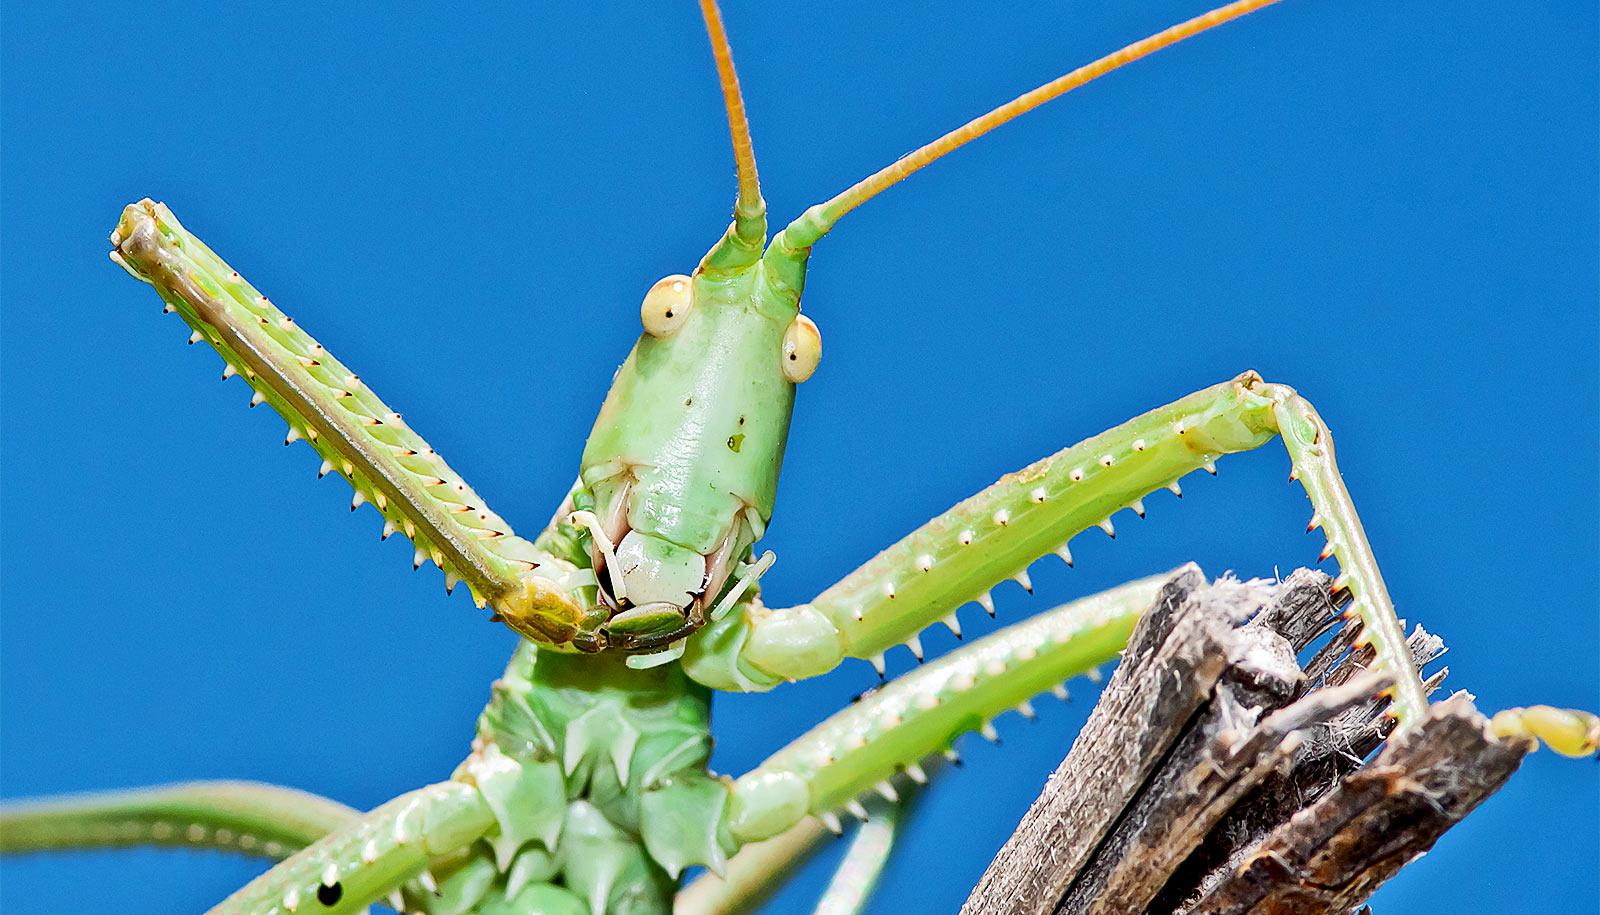 A green cricket against a blue background